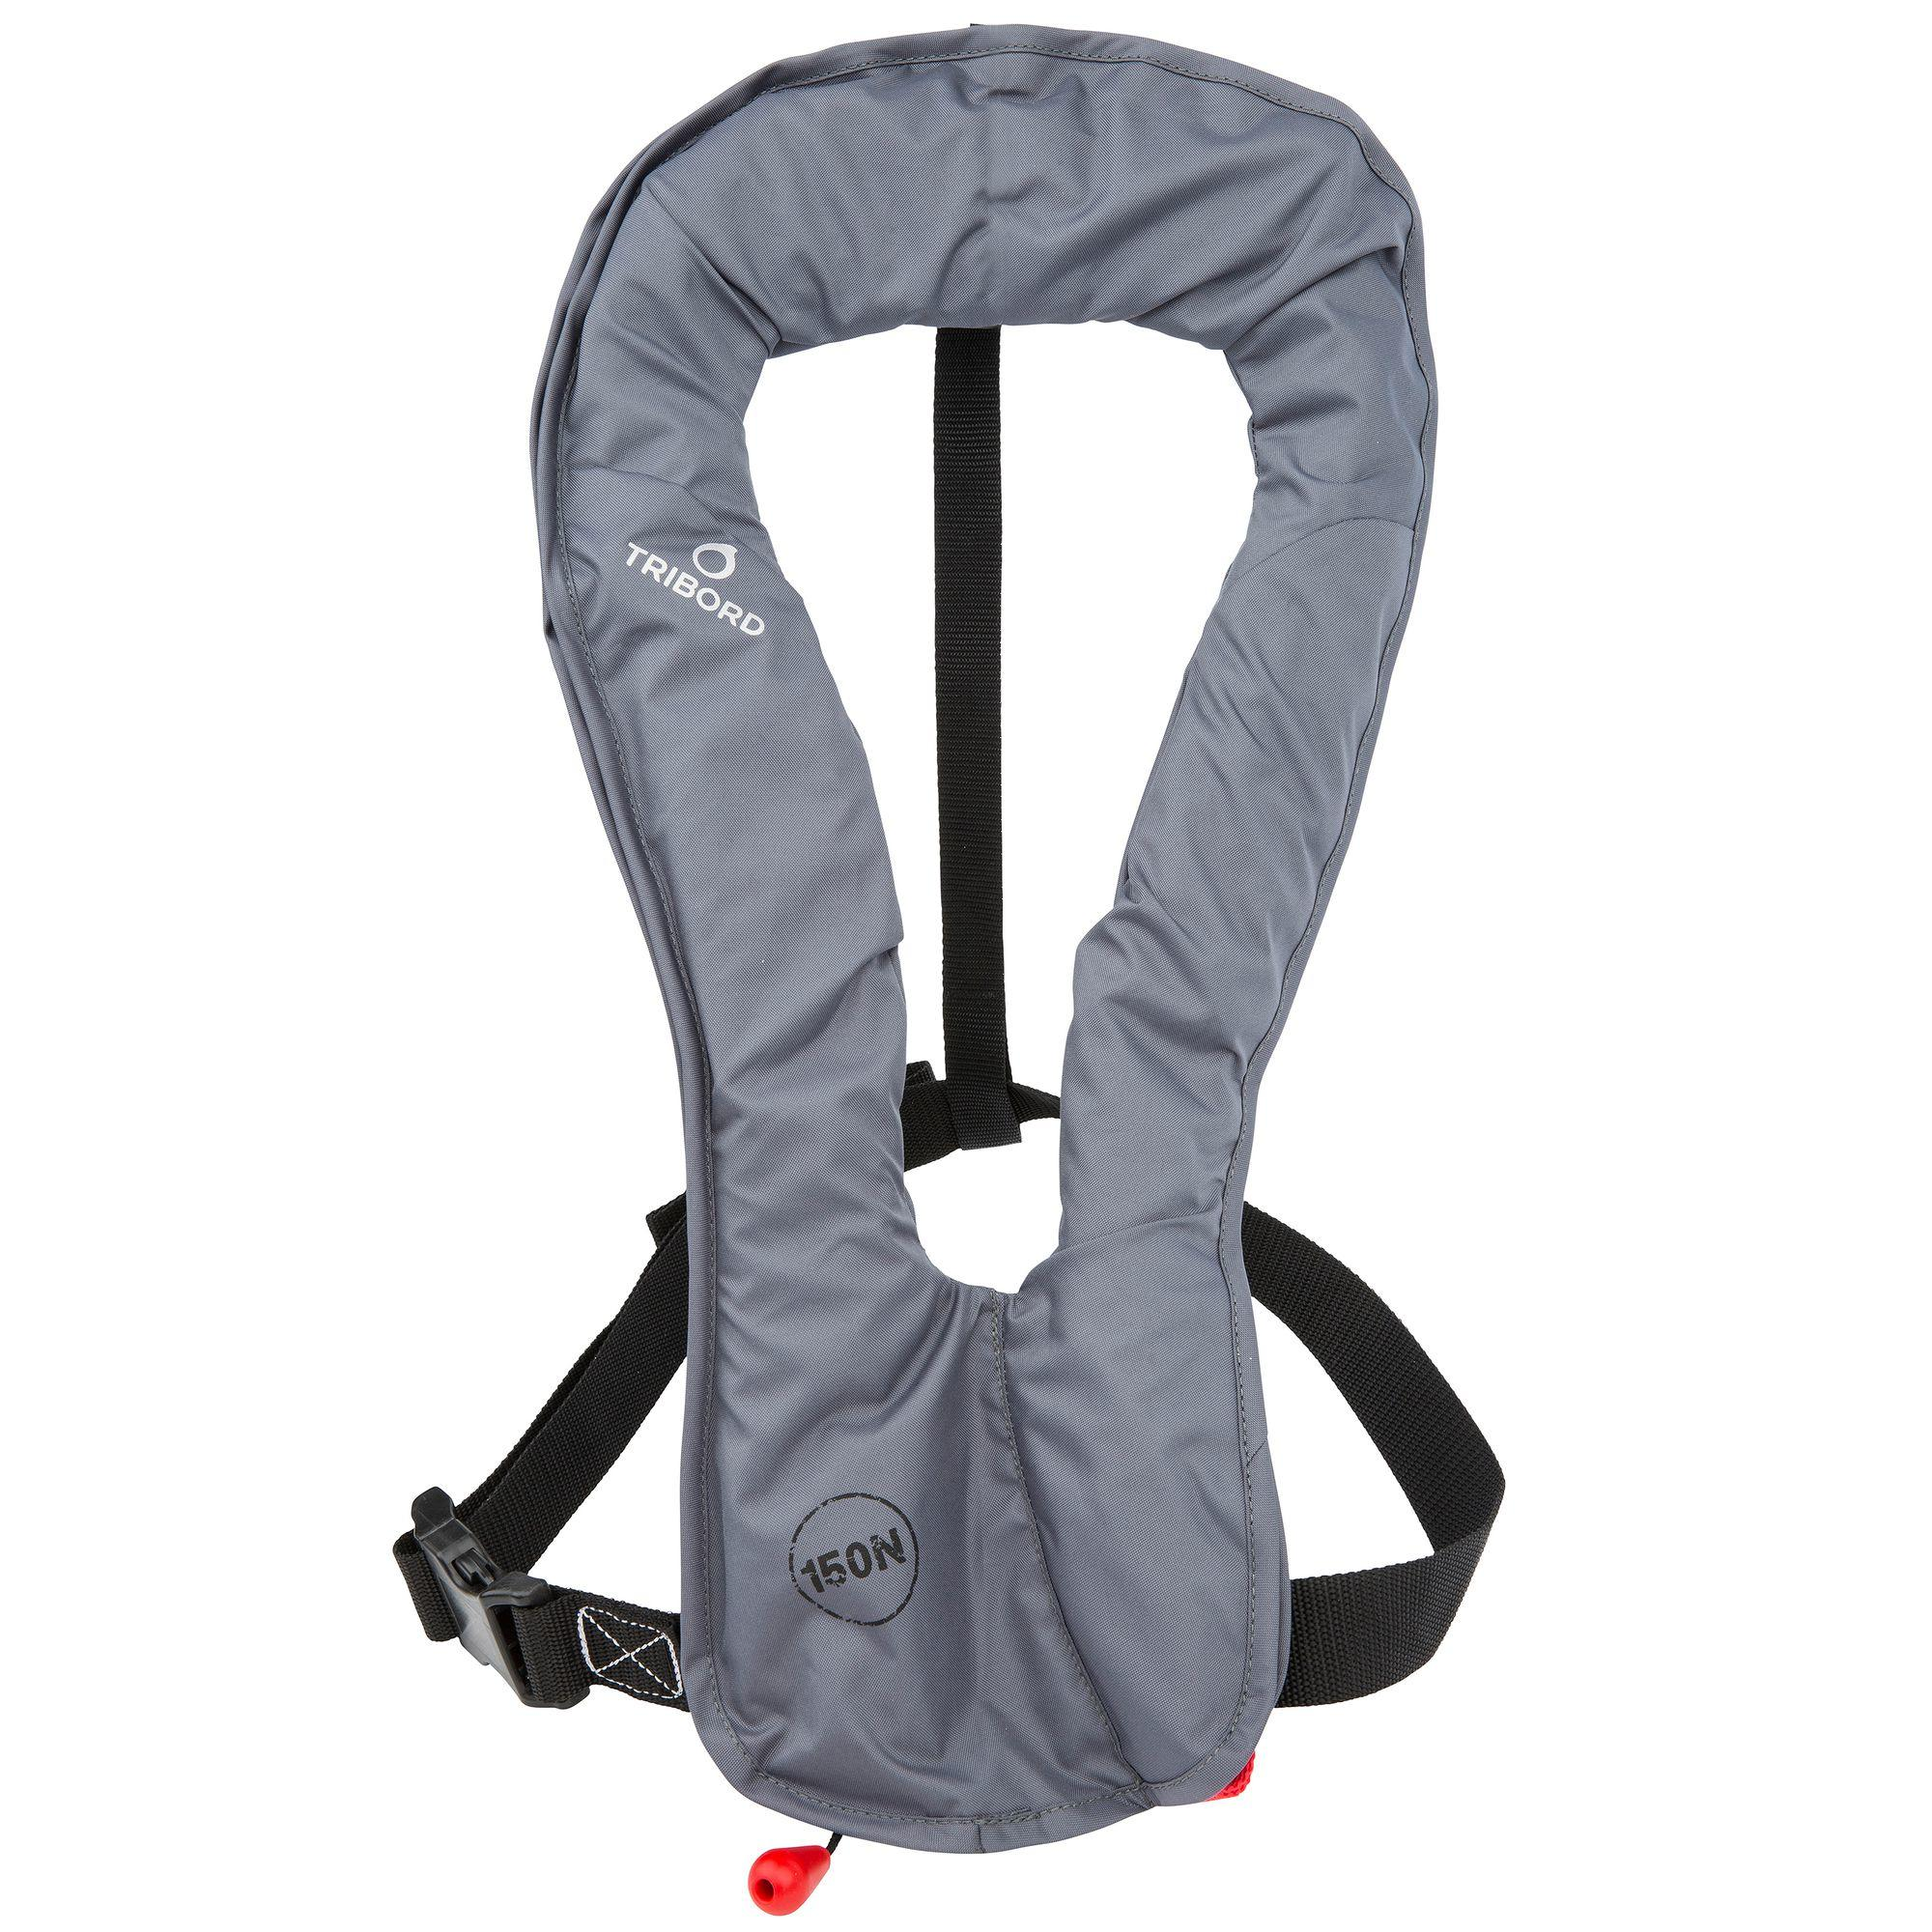 LJ 150N AIR Adult Inflatable Life Jacket - Grey